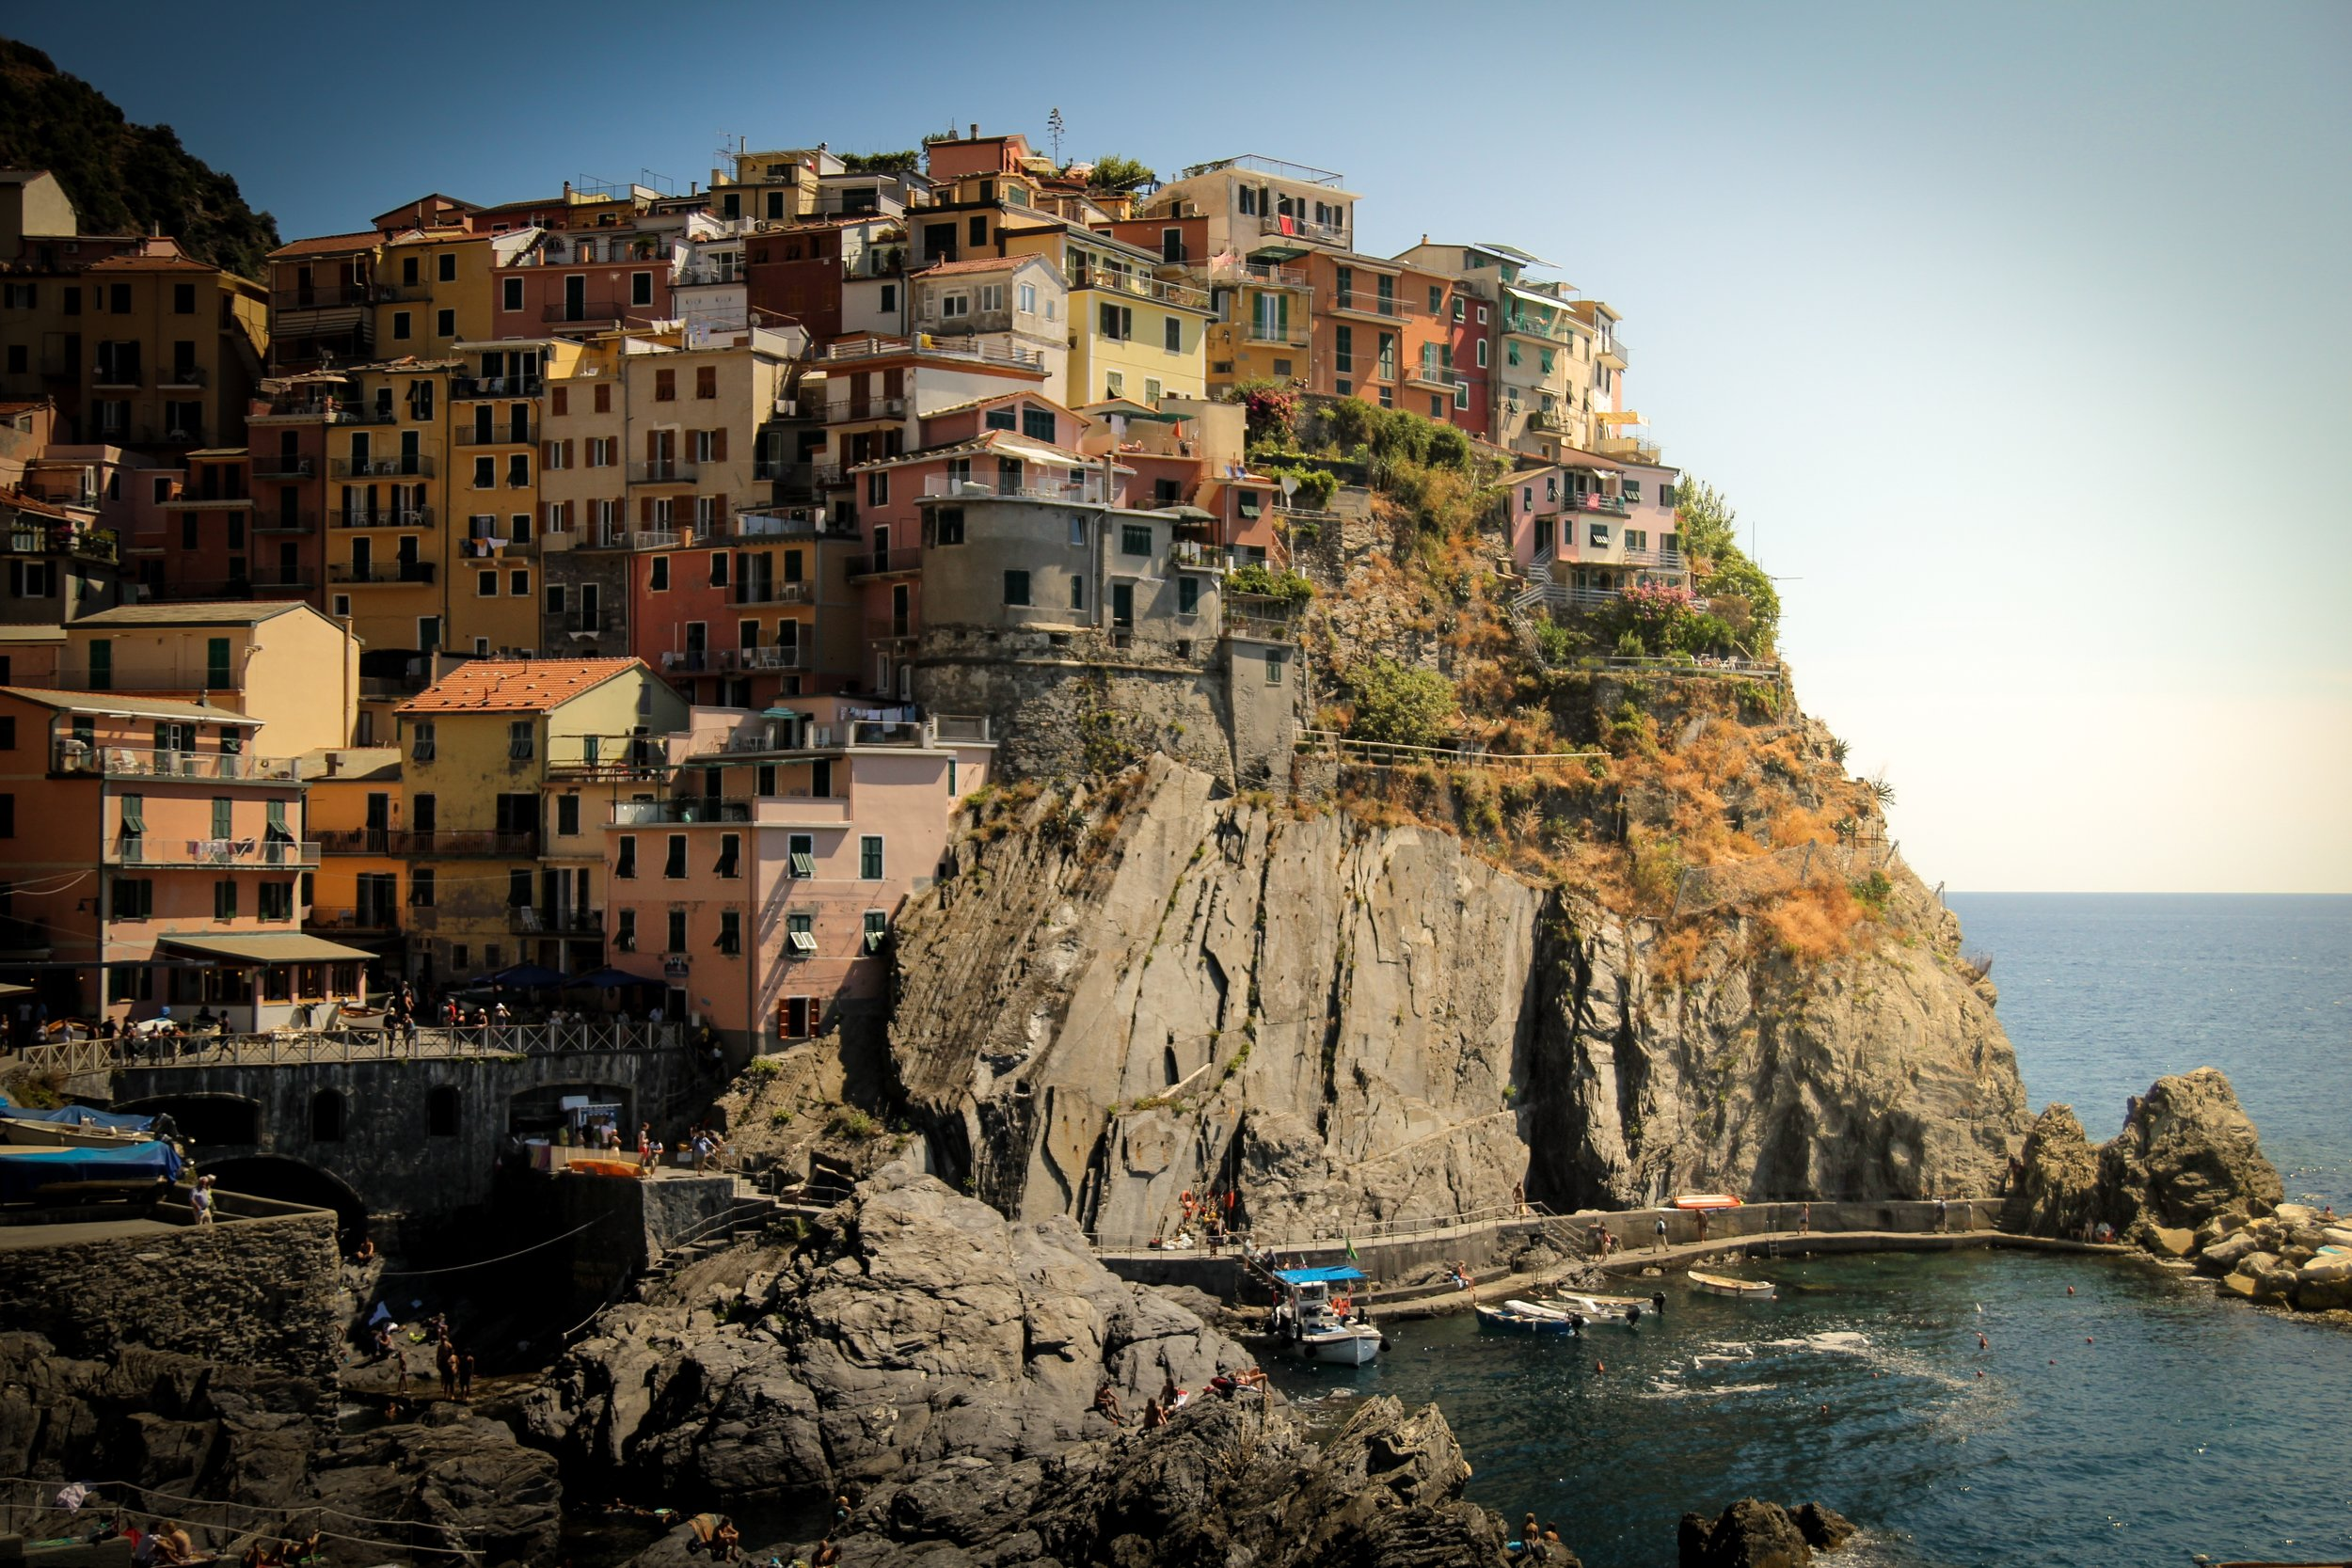 There's not much more beautiful than Cinque Terre. Just a short train ride away from Florence, Italy.